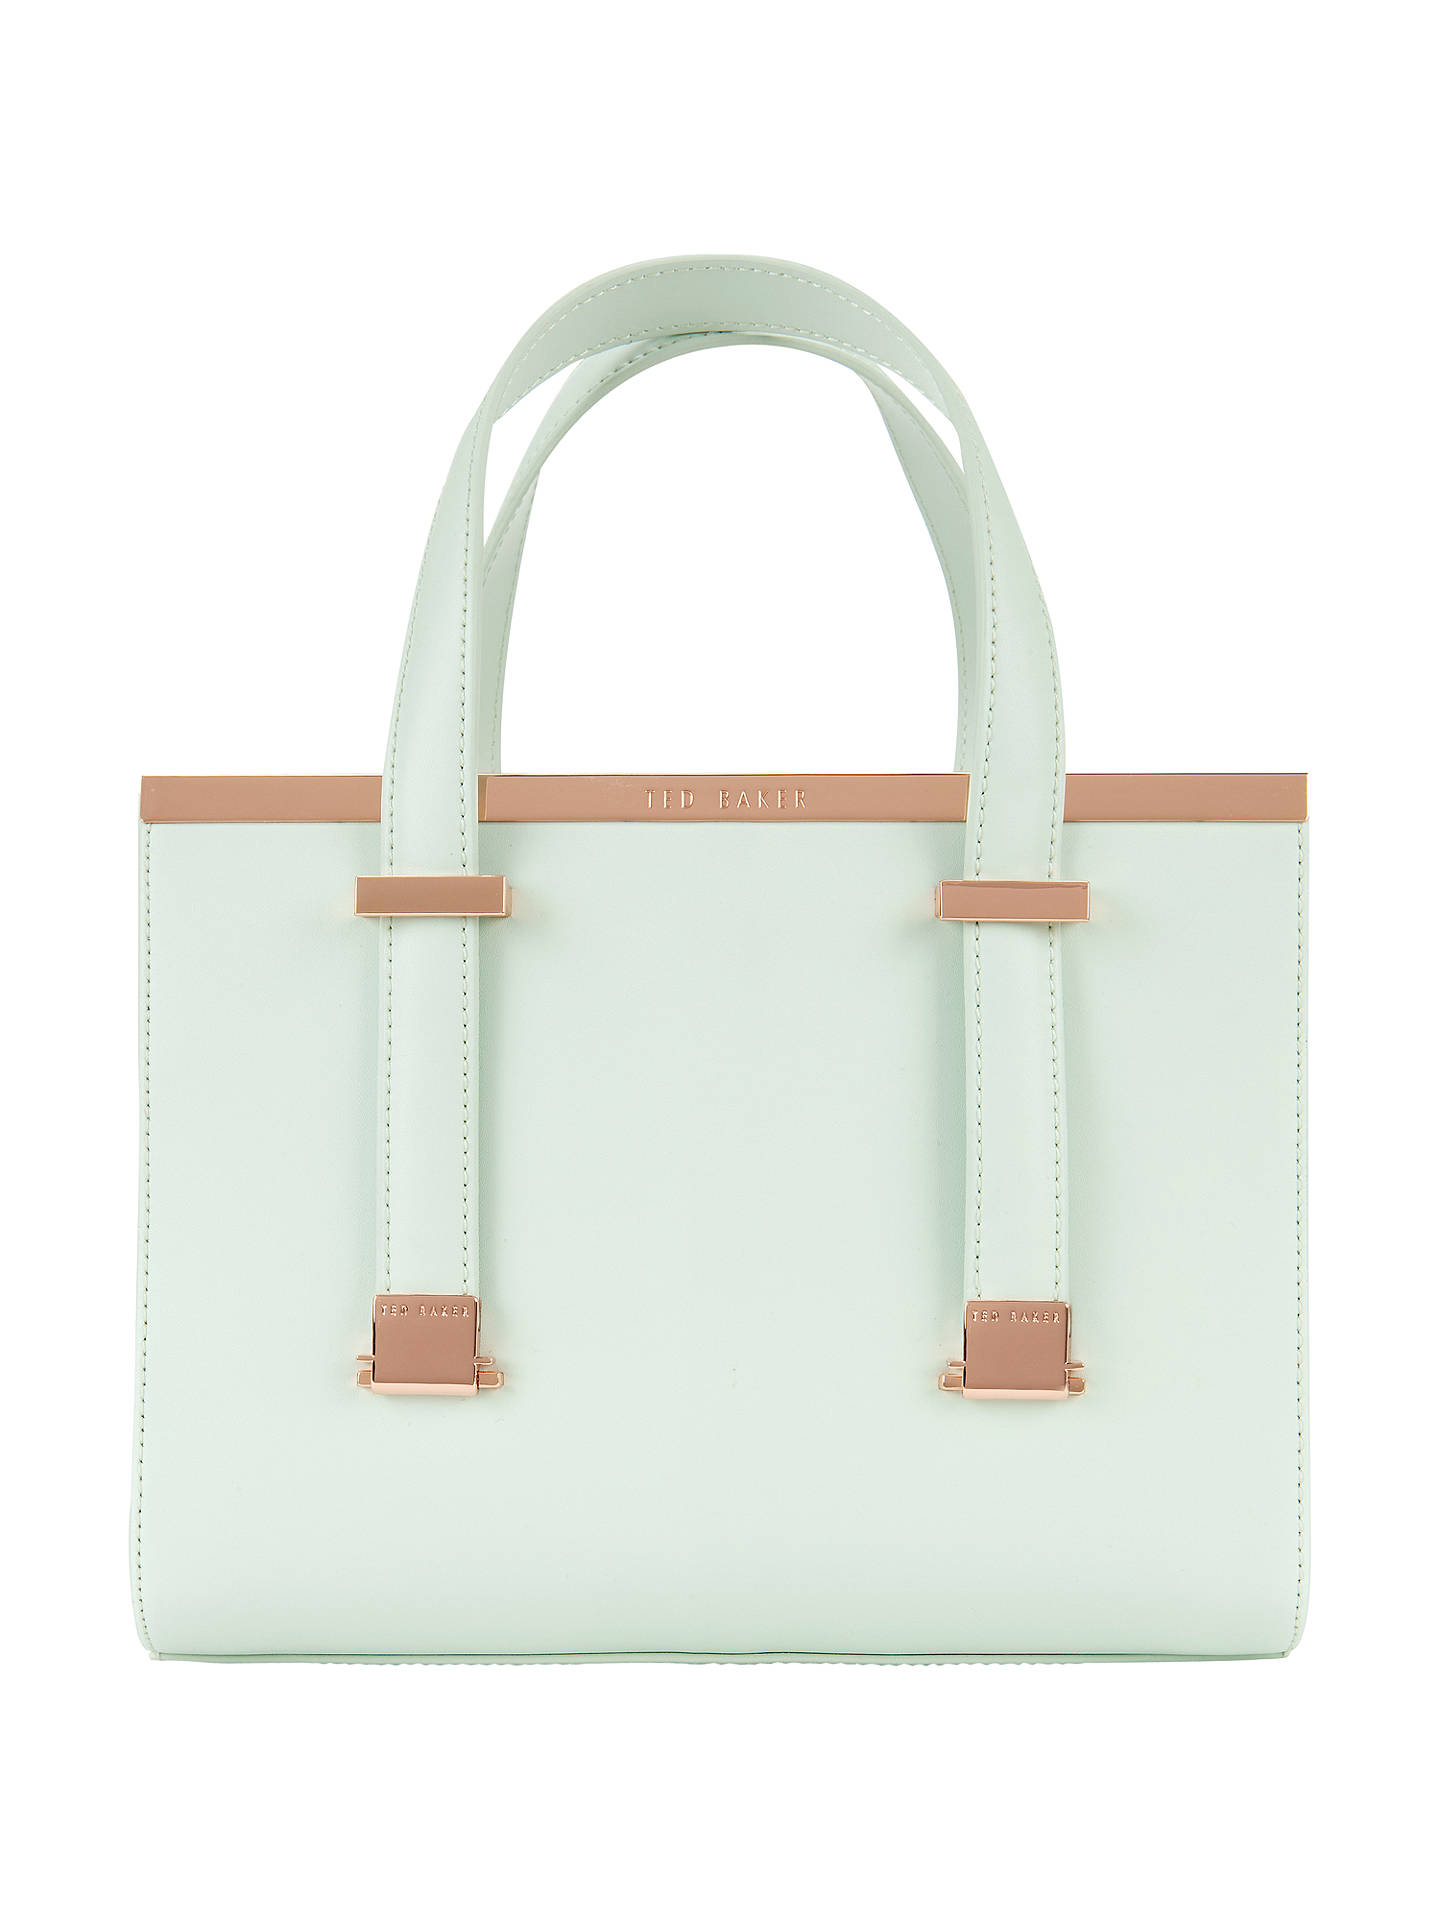 64aa6087855c3 Buy Ted Baker Betties Leather Mini Tote Bag, Mint Online at johnlewis.com  ...